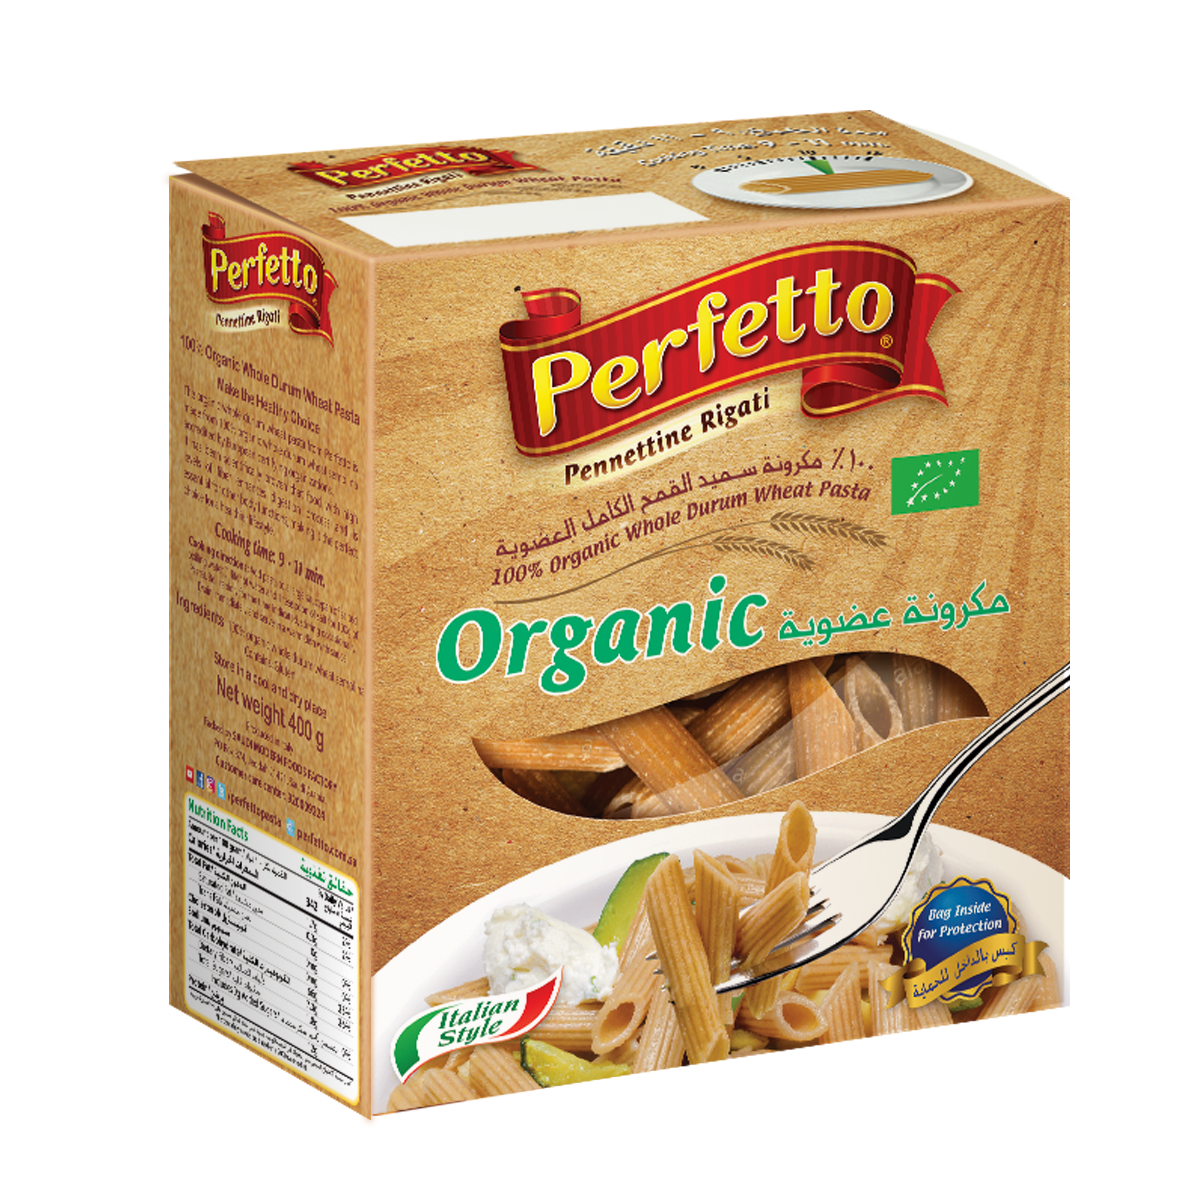 Organic Whole Durum Wheat Pennettine Rigati Pasta